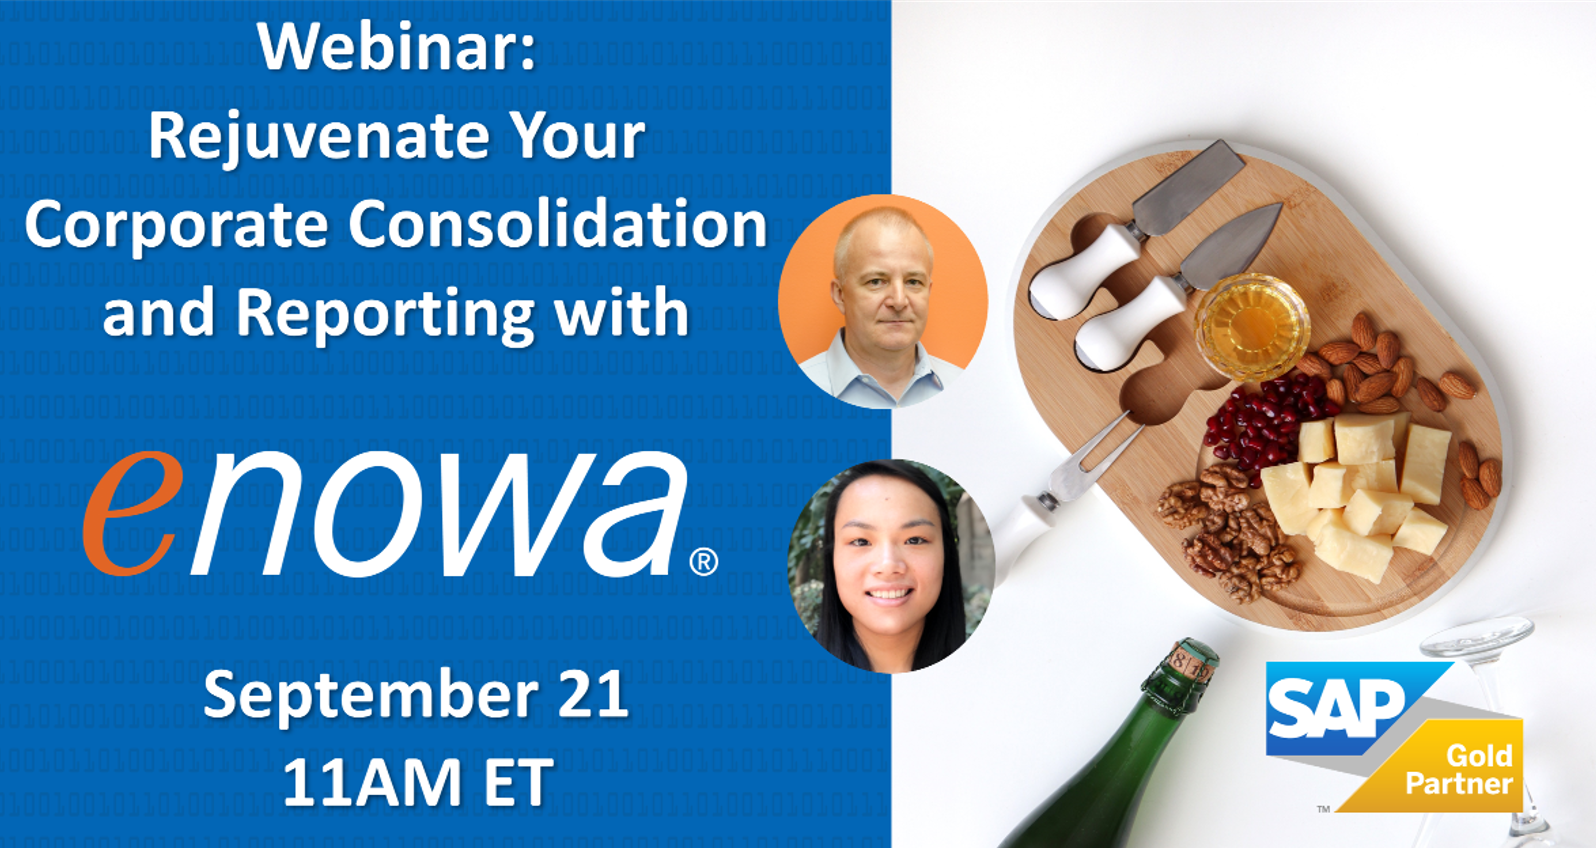 Webinar: Rejuvenate Your Corporate Consolidation and Reporting Processes